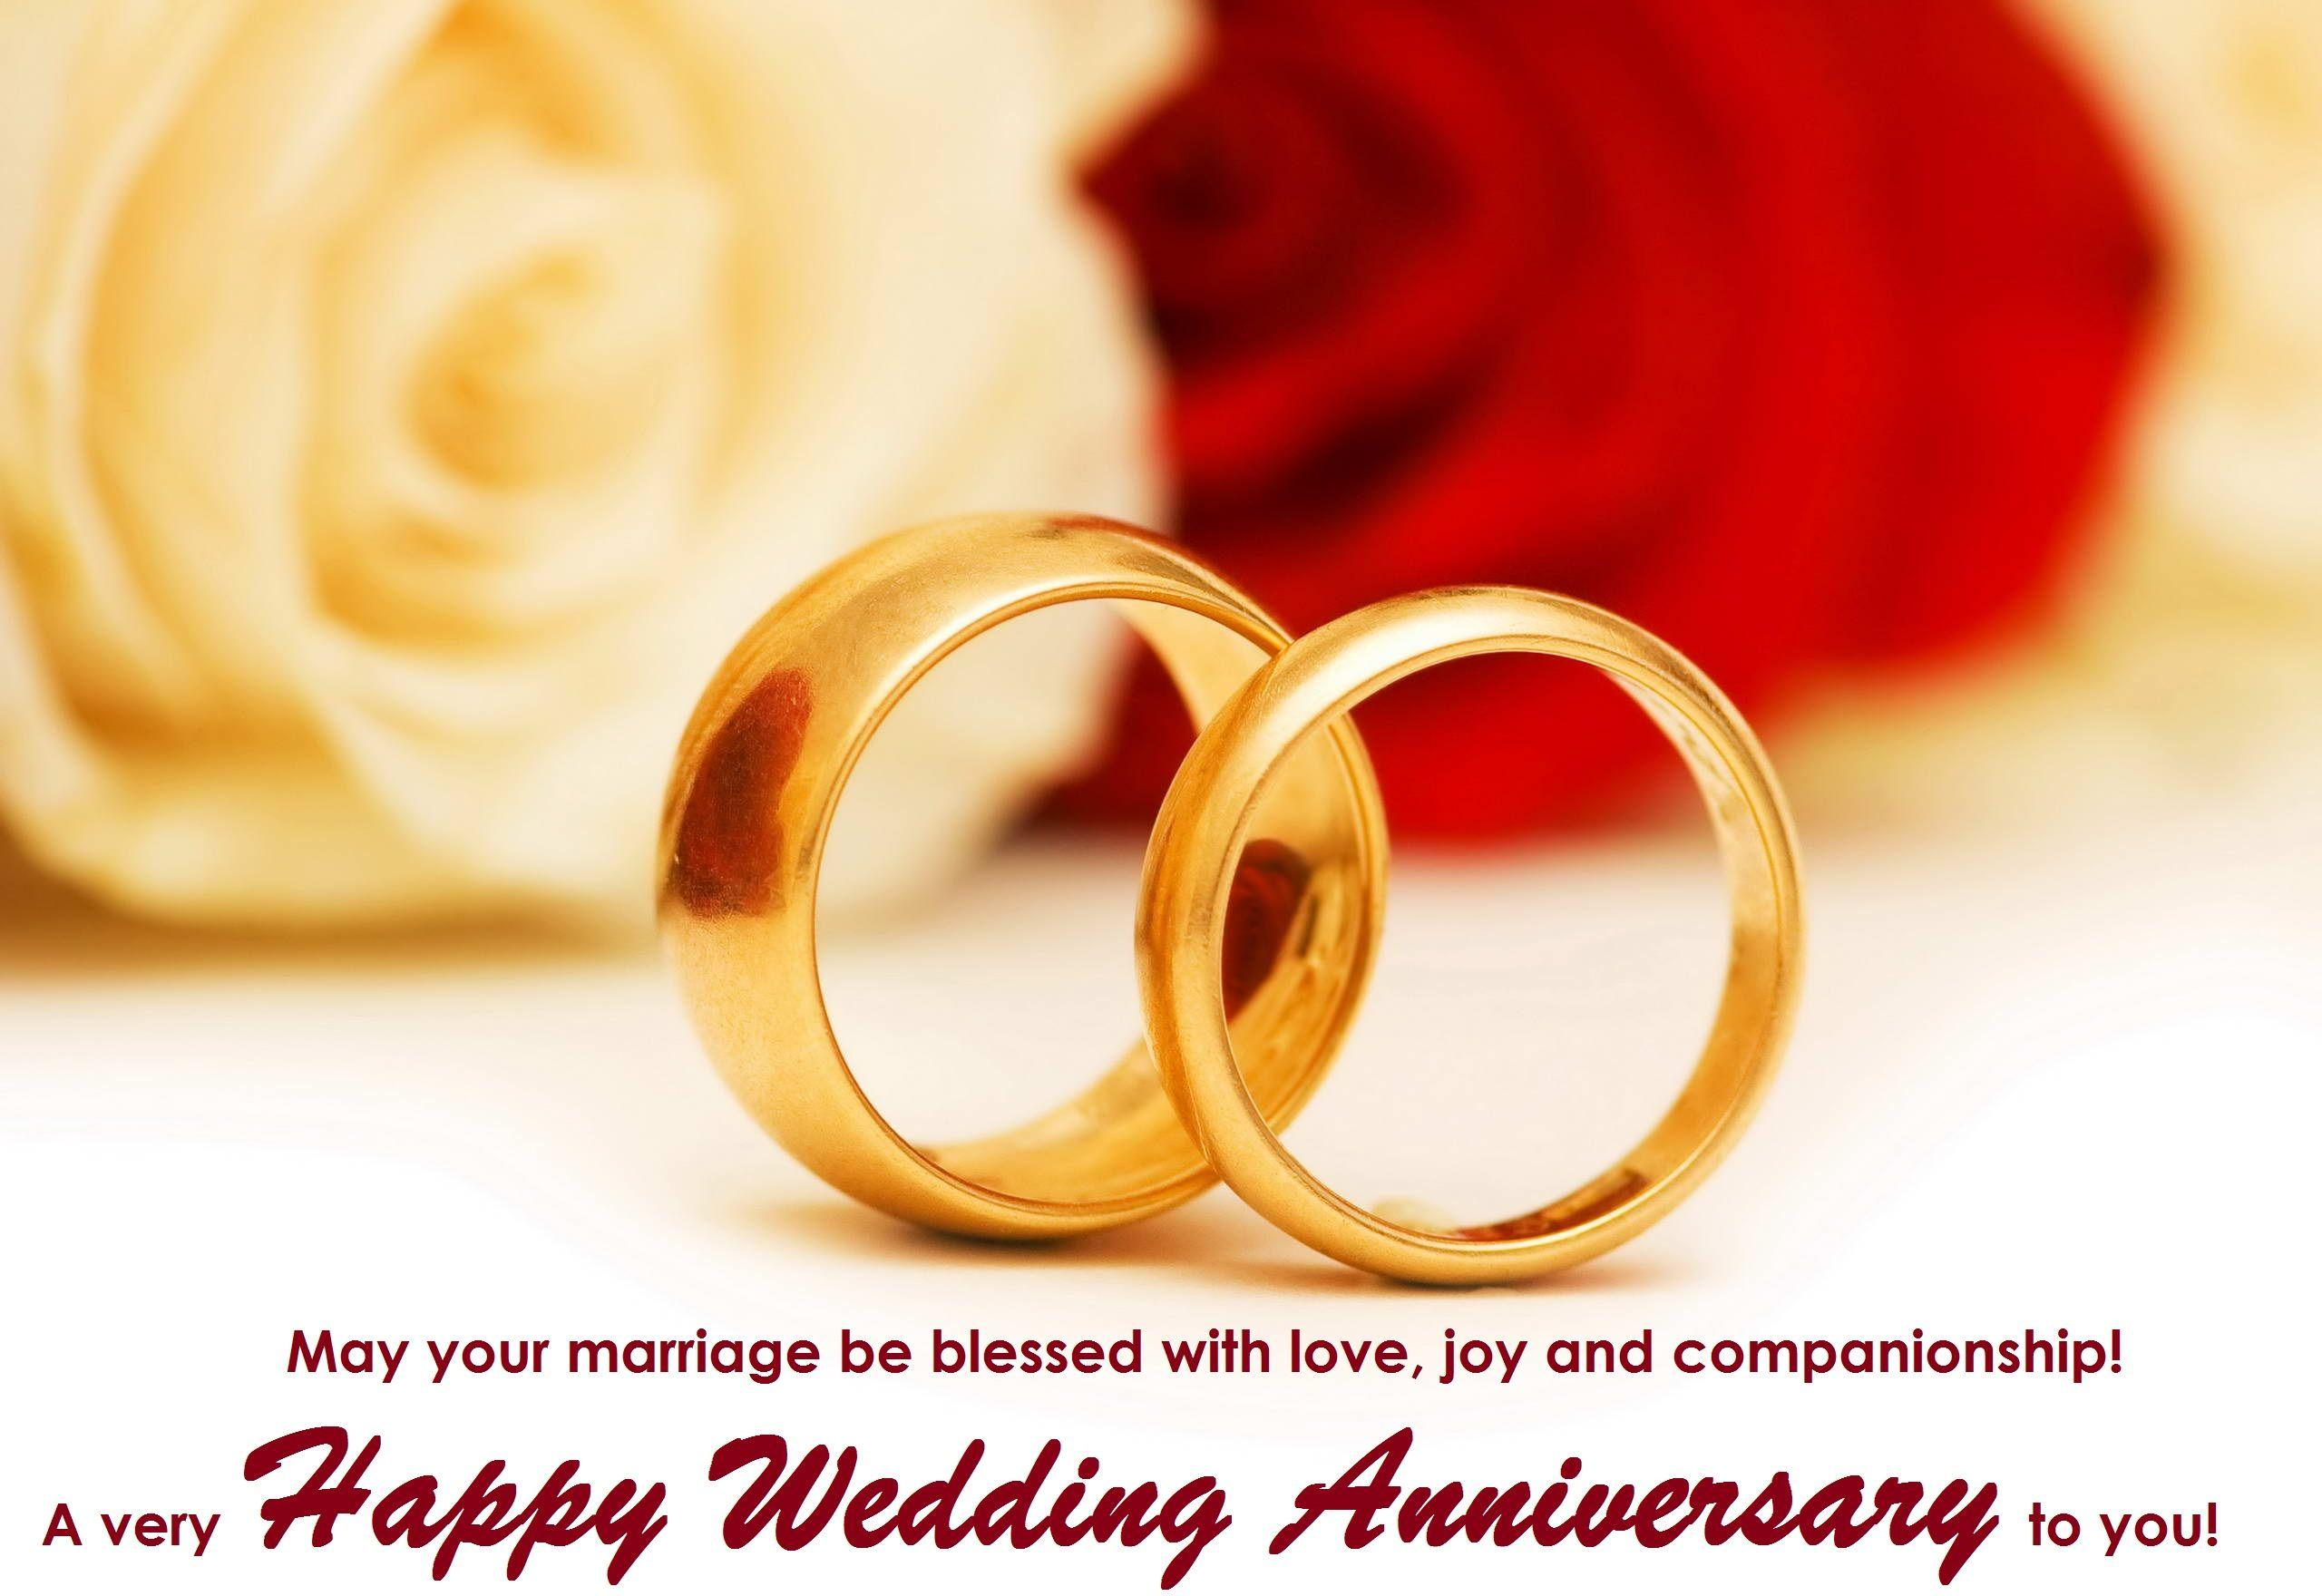 Happy wedding anniversary wishes wallpapers